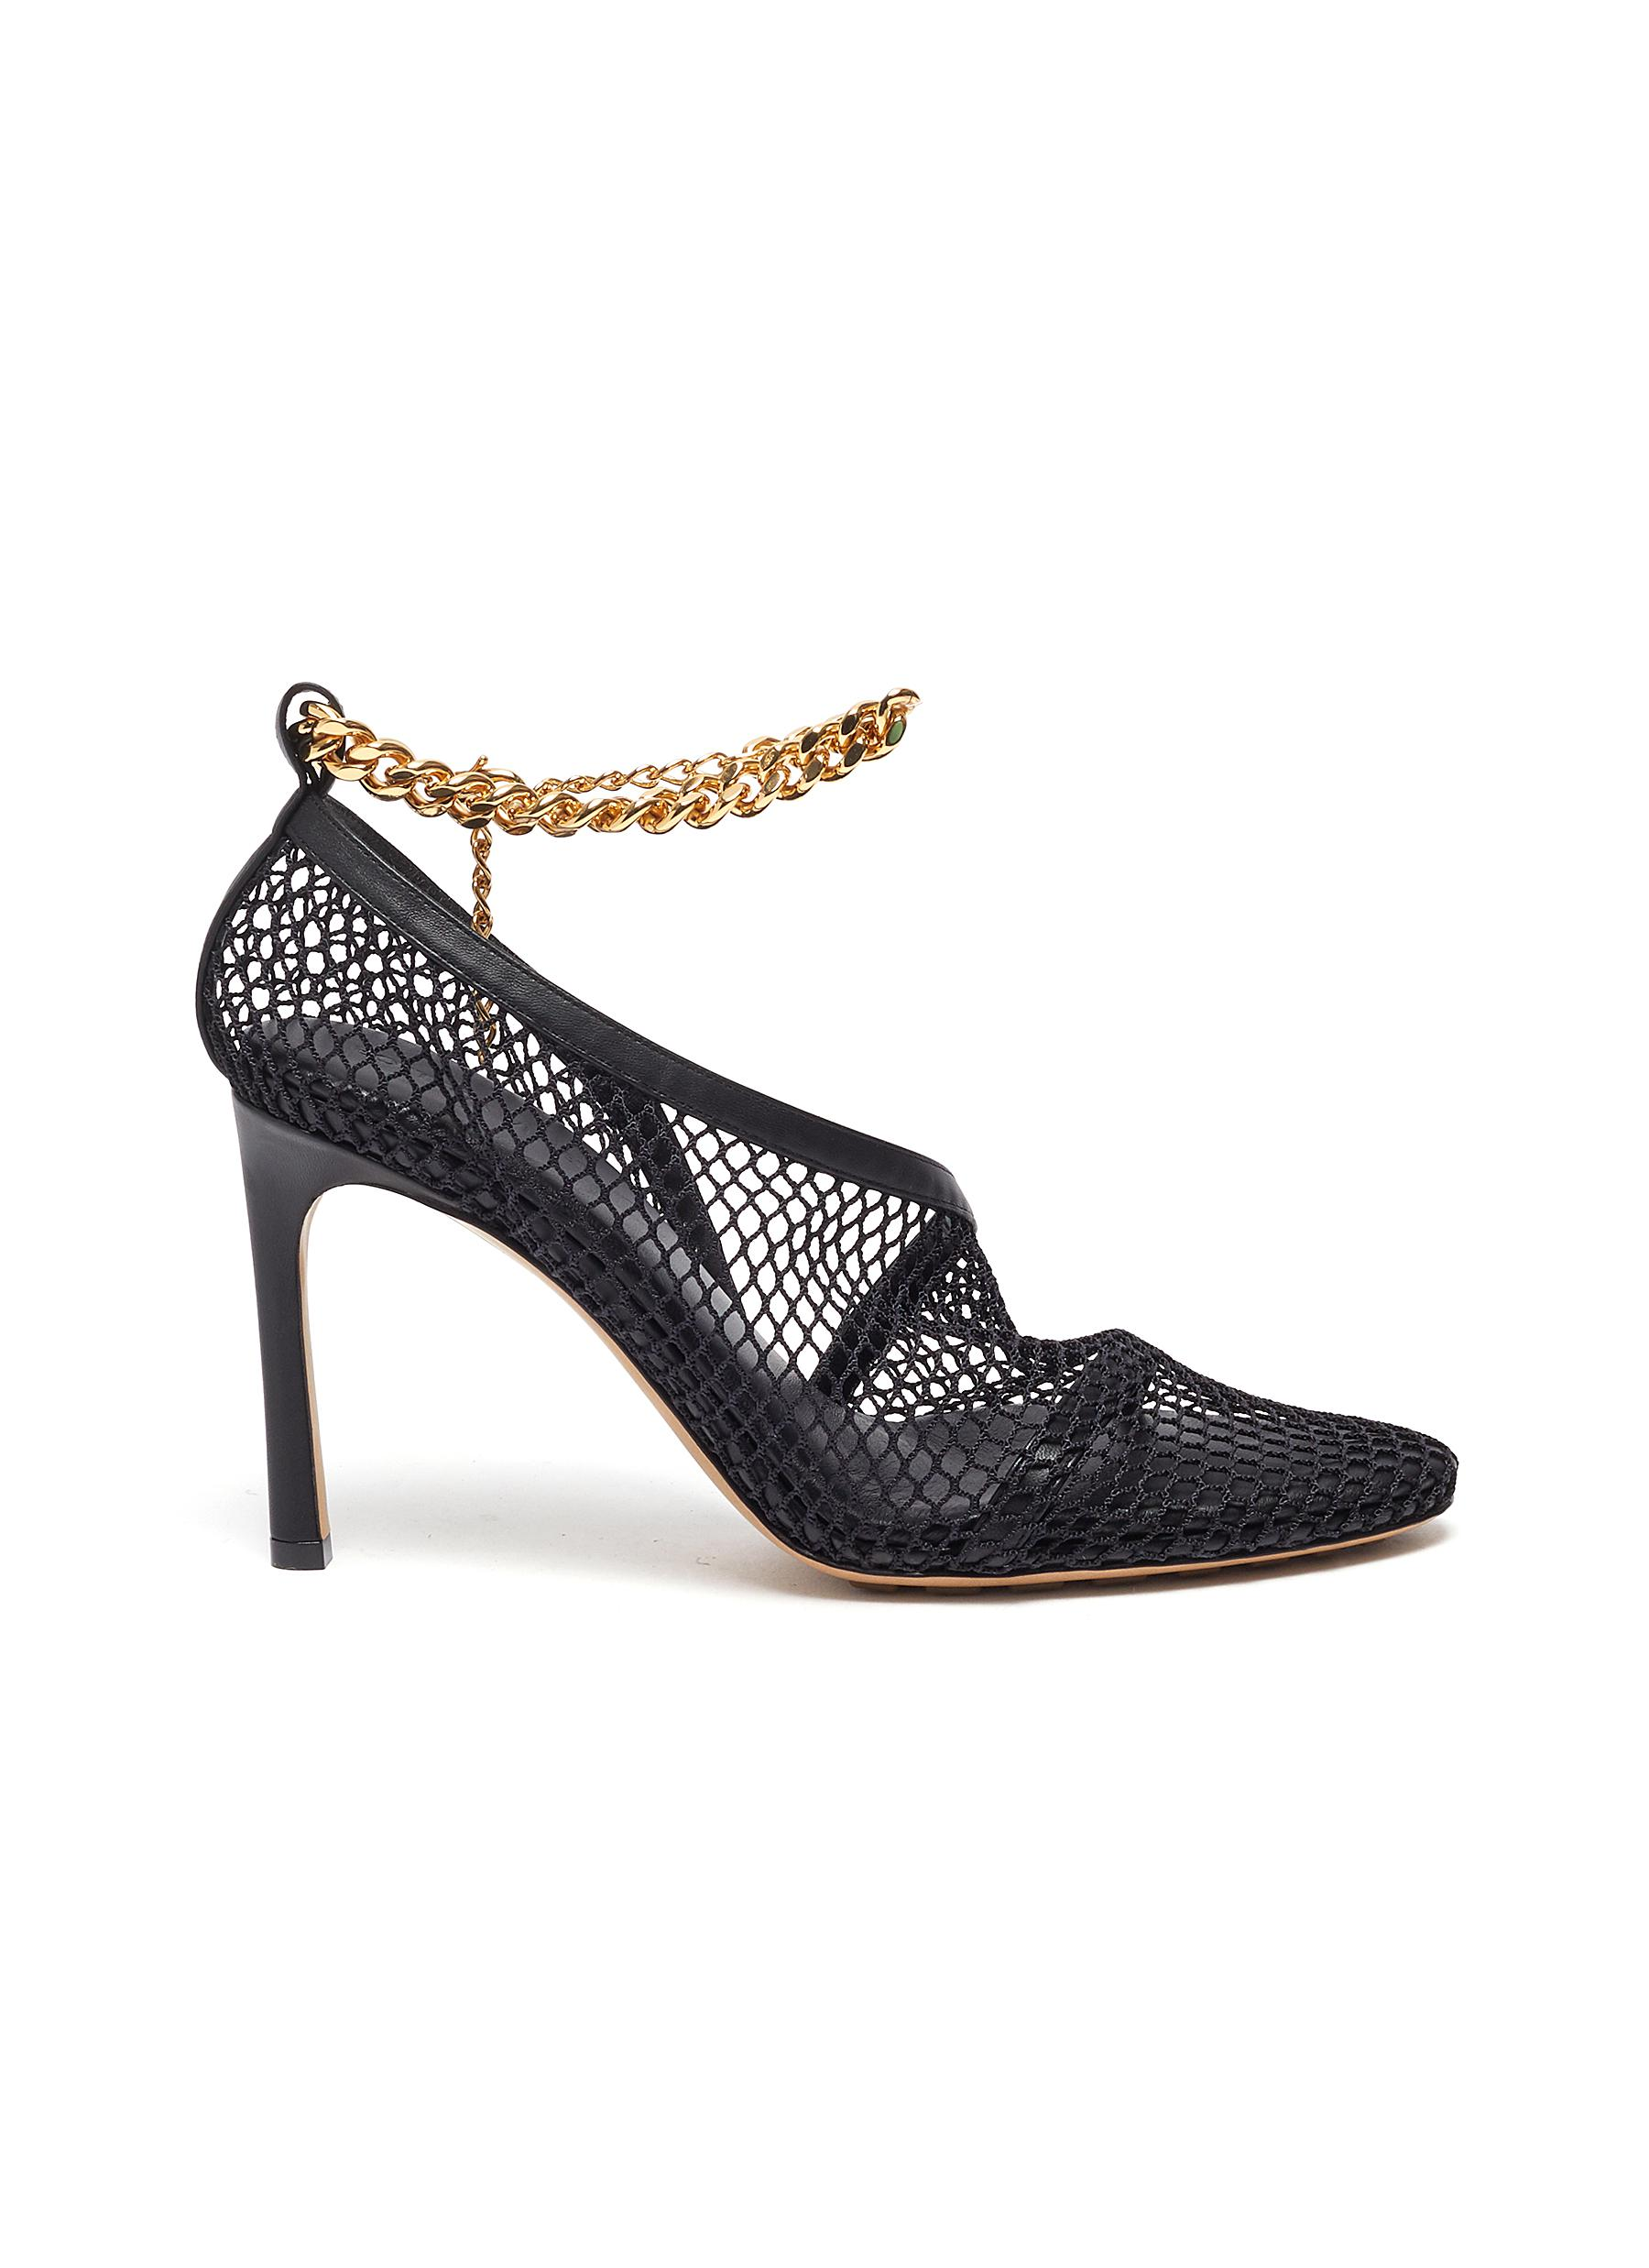 Bottega Veneta High Heels Chunky chain embellished mesh pumps